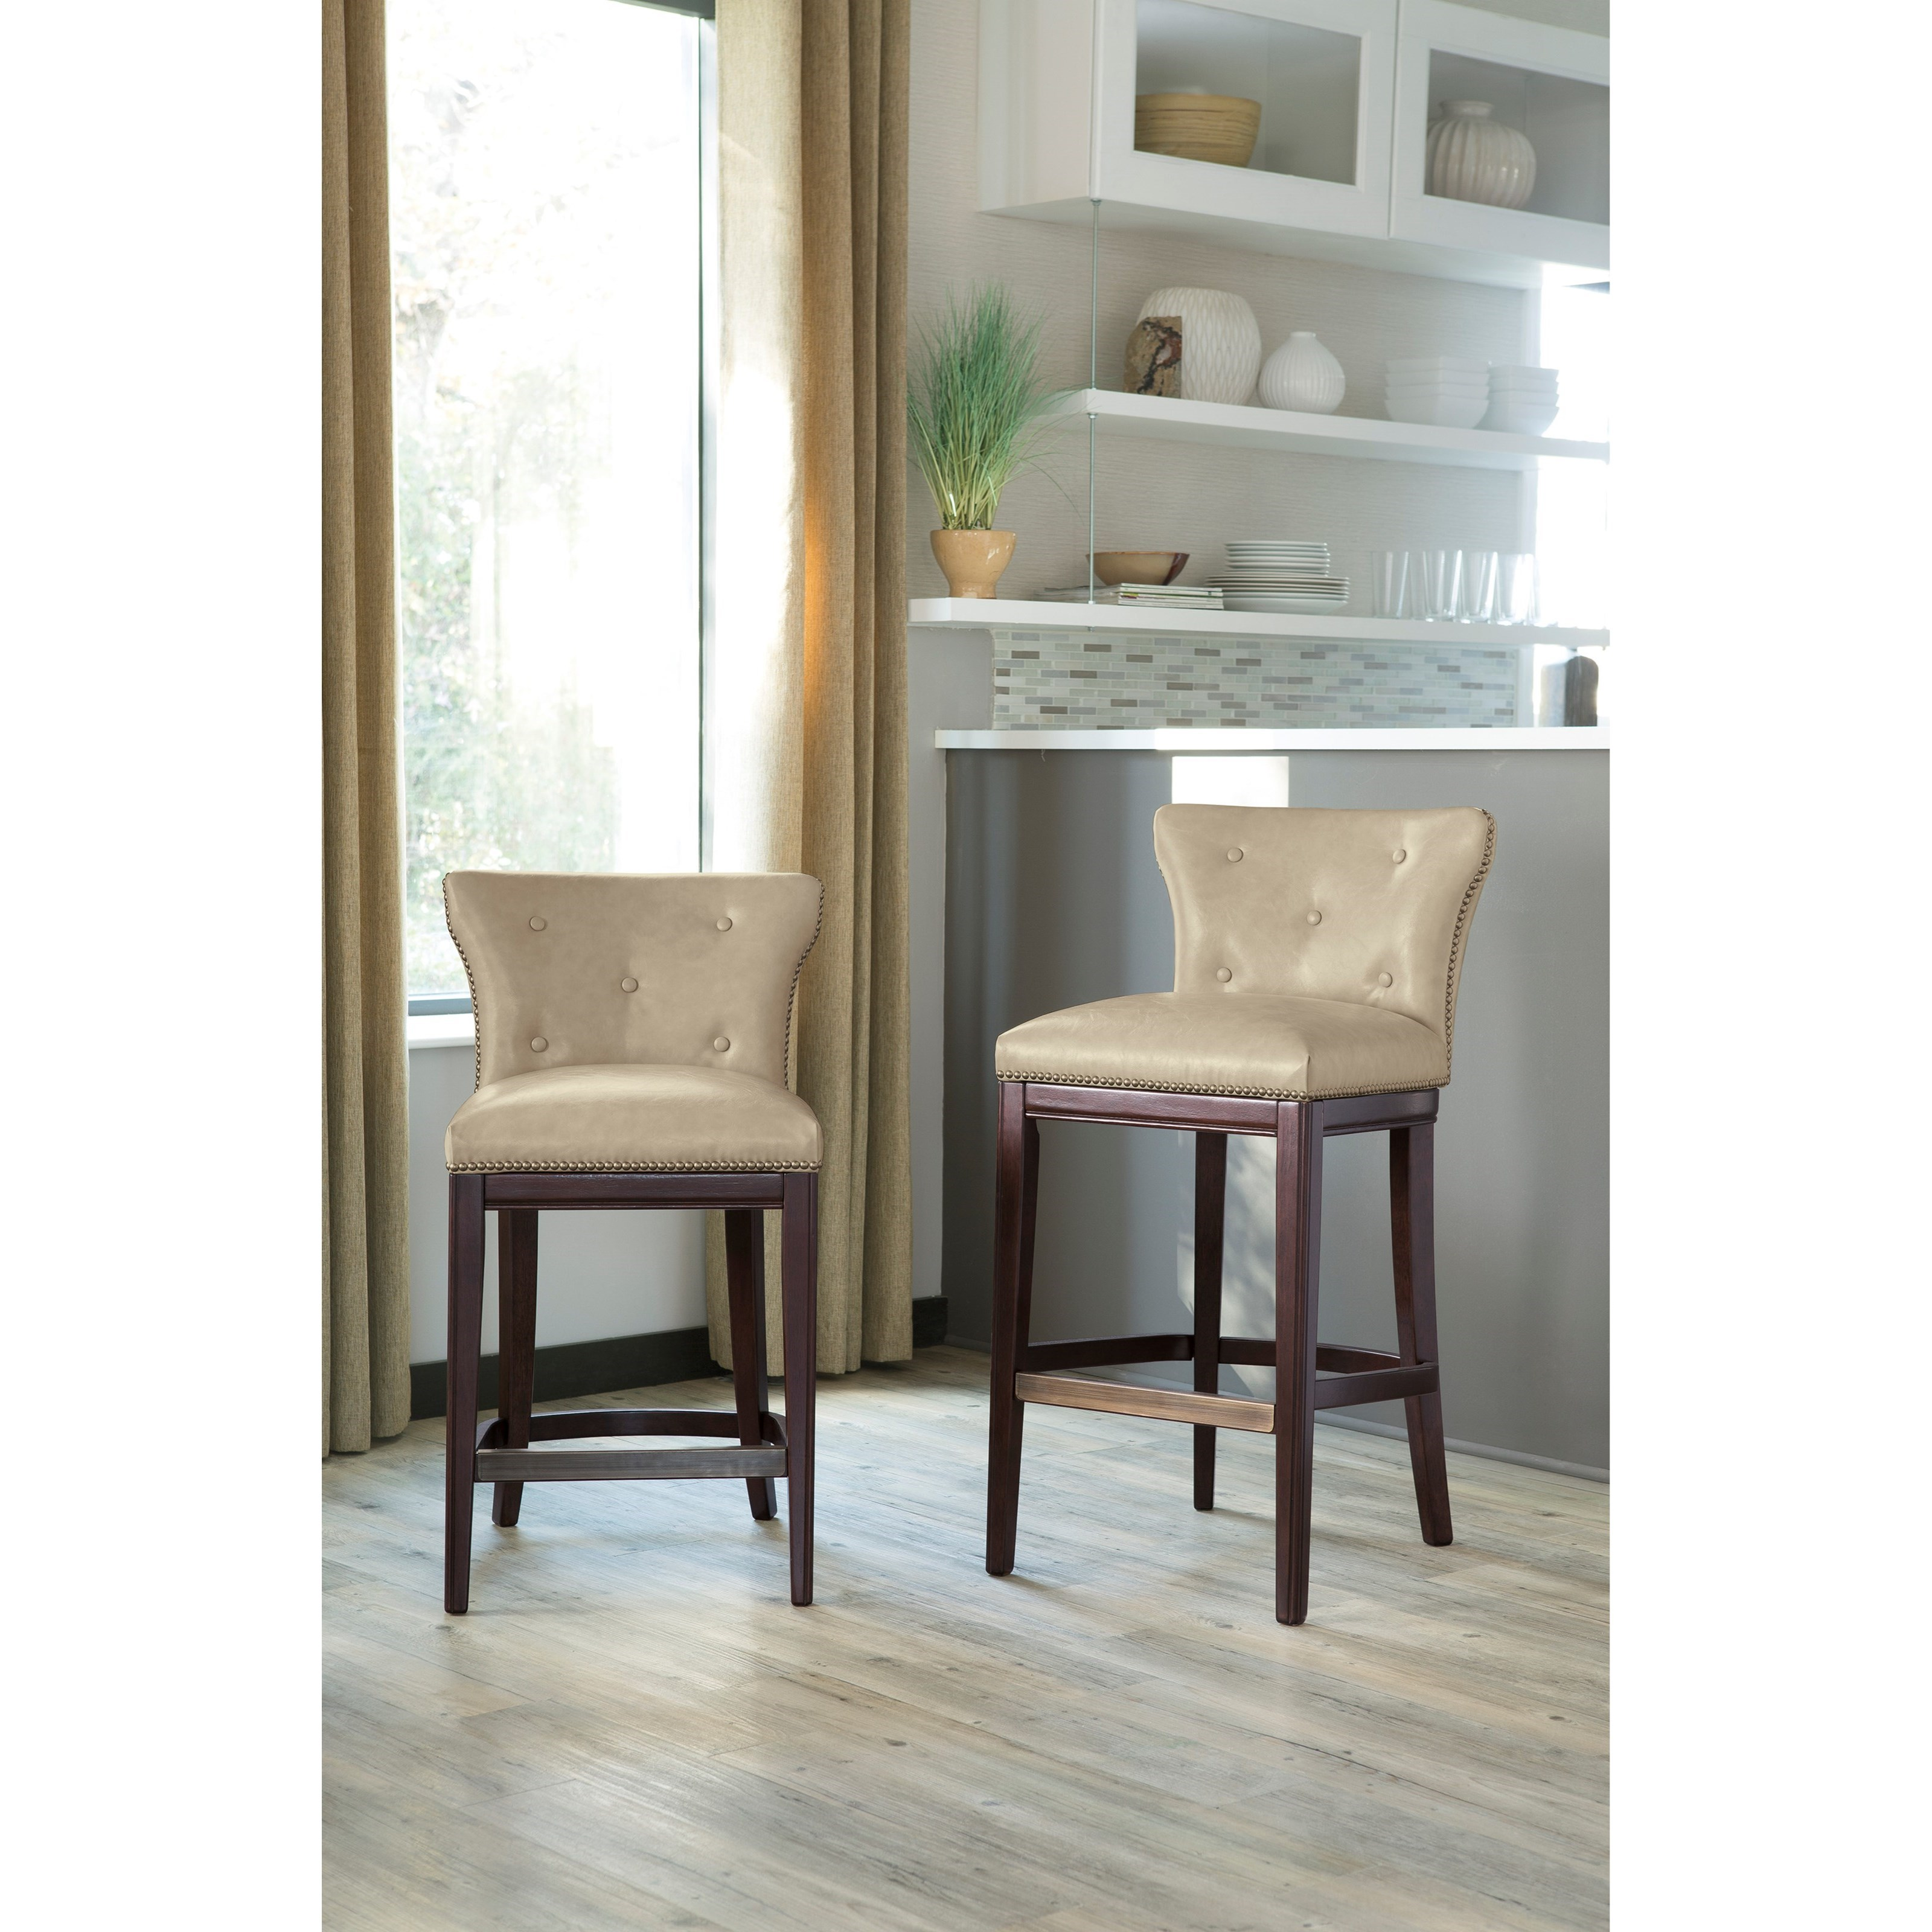 Upholstered Counter Stools Linen Upholstered Counter  : products2Fsignaturedesignbyashley2Fcolor2Fcanidellid500 424 b5 from youhavechosen.us size 3200 x 3200 jpeg 1010kB